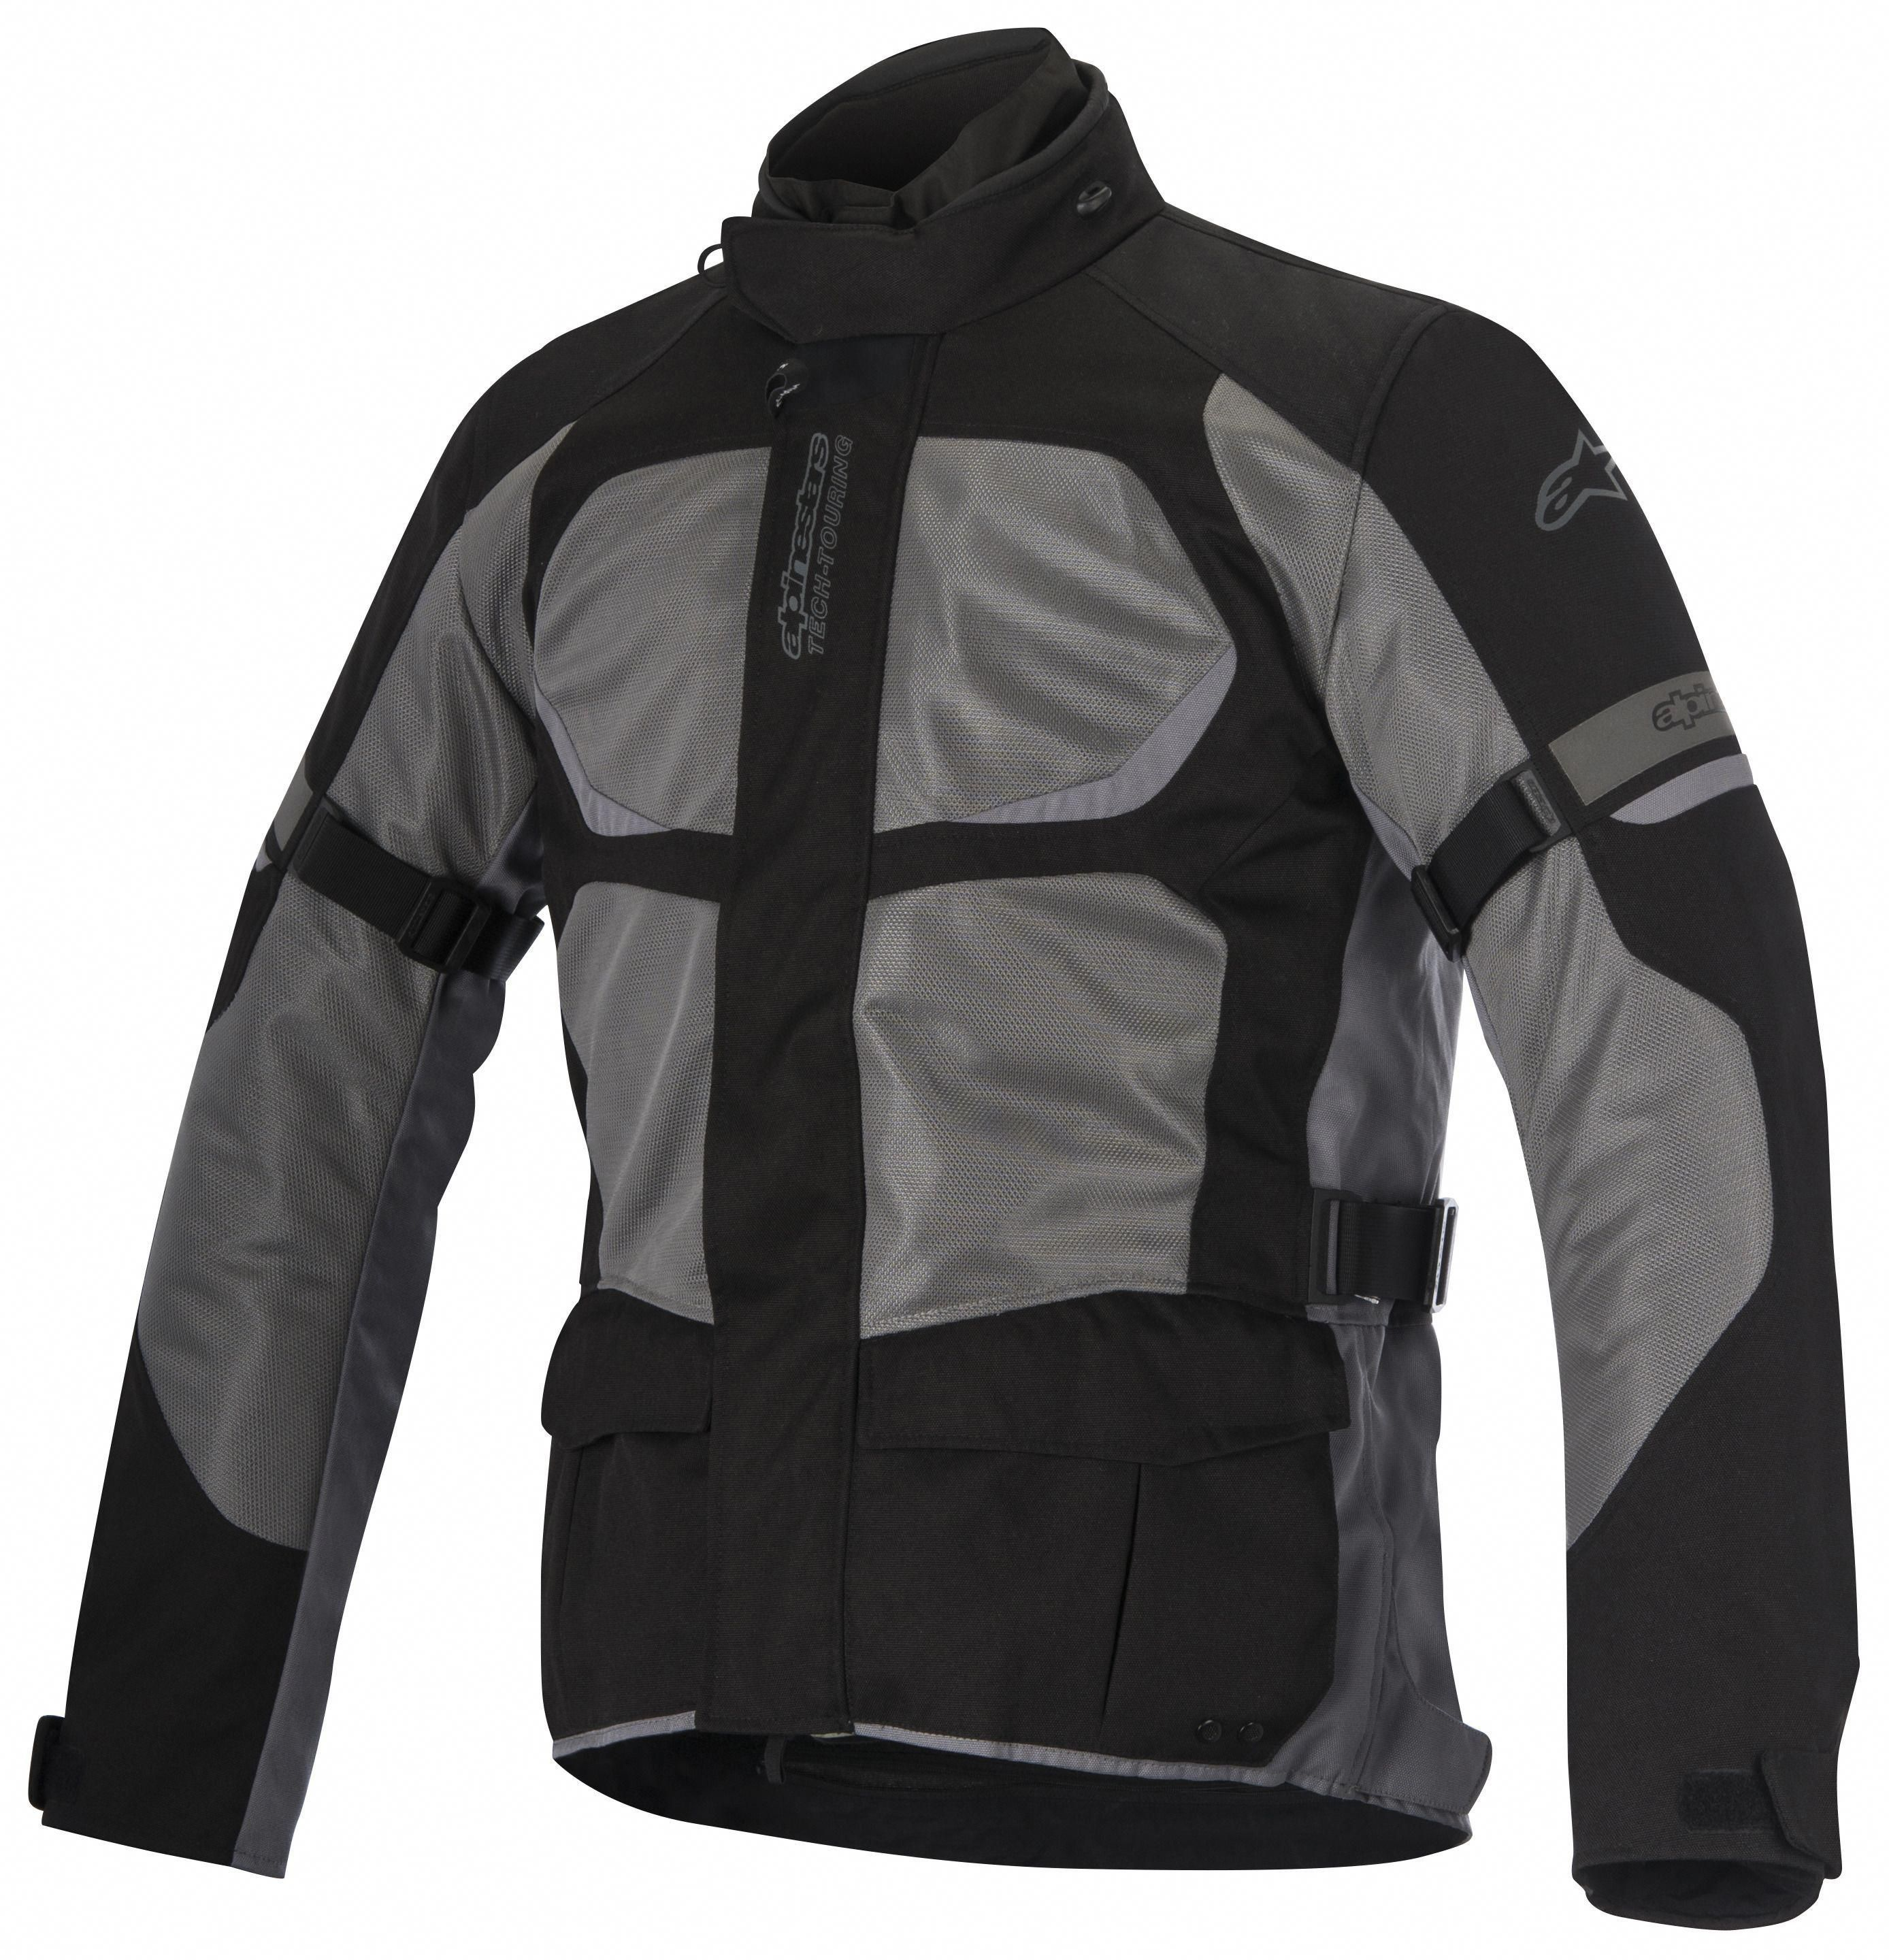 A versatile warm weather touring jacket that incorporates